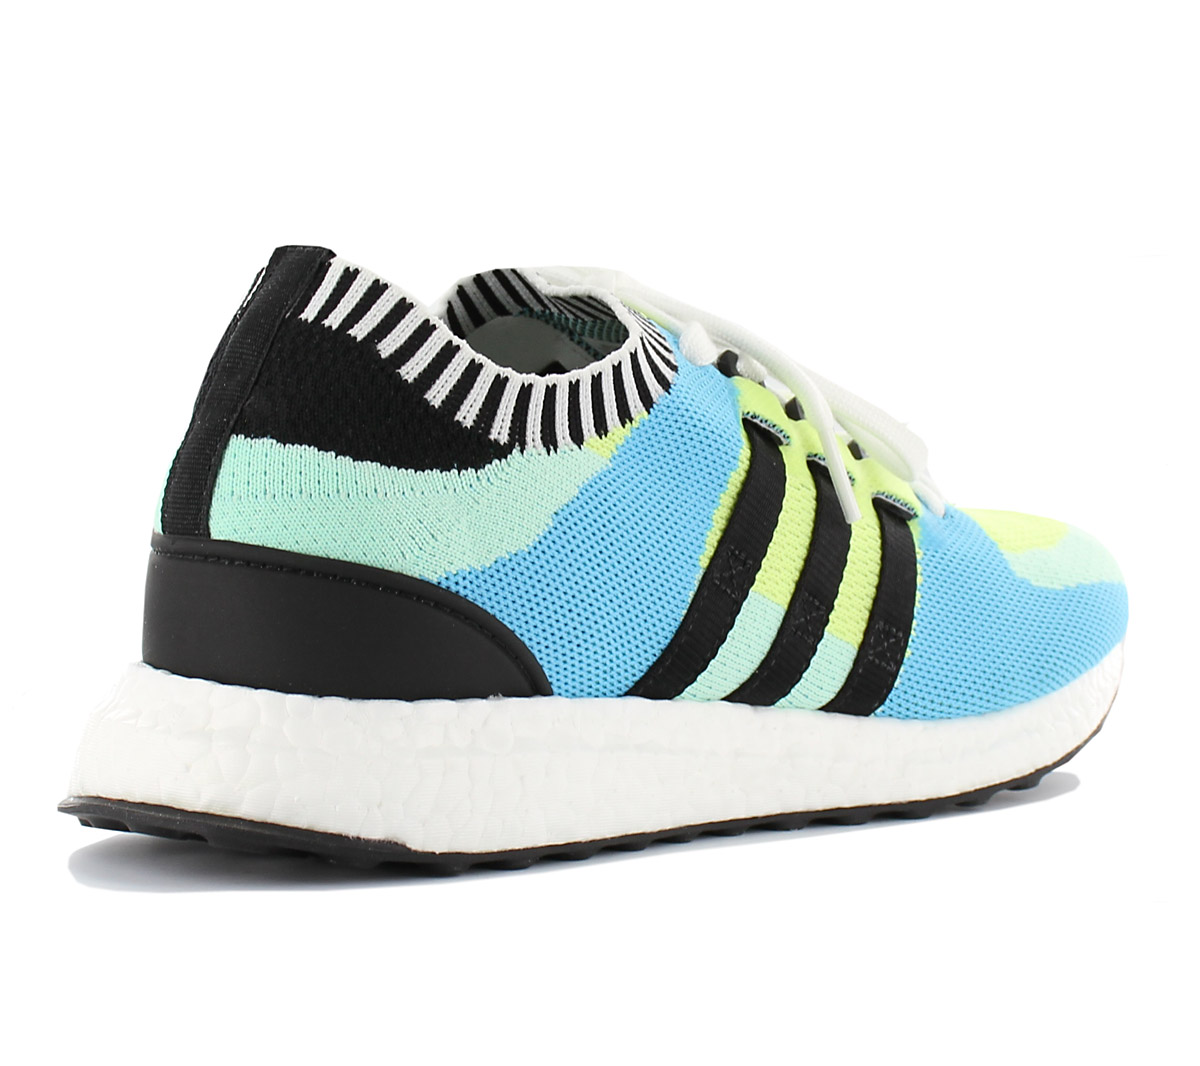 Details about Adidas ORIGINALS EQT EQUIPMENT Support Ultra PK Primeknit Boost Shoes BB1244 show original title